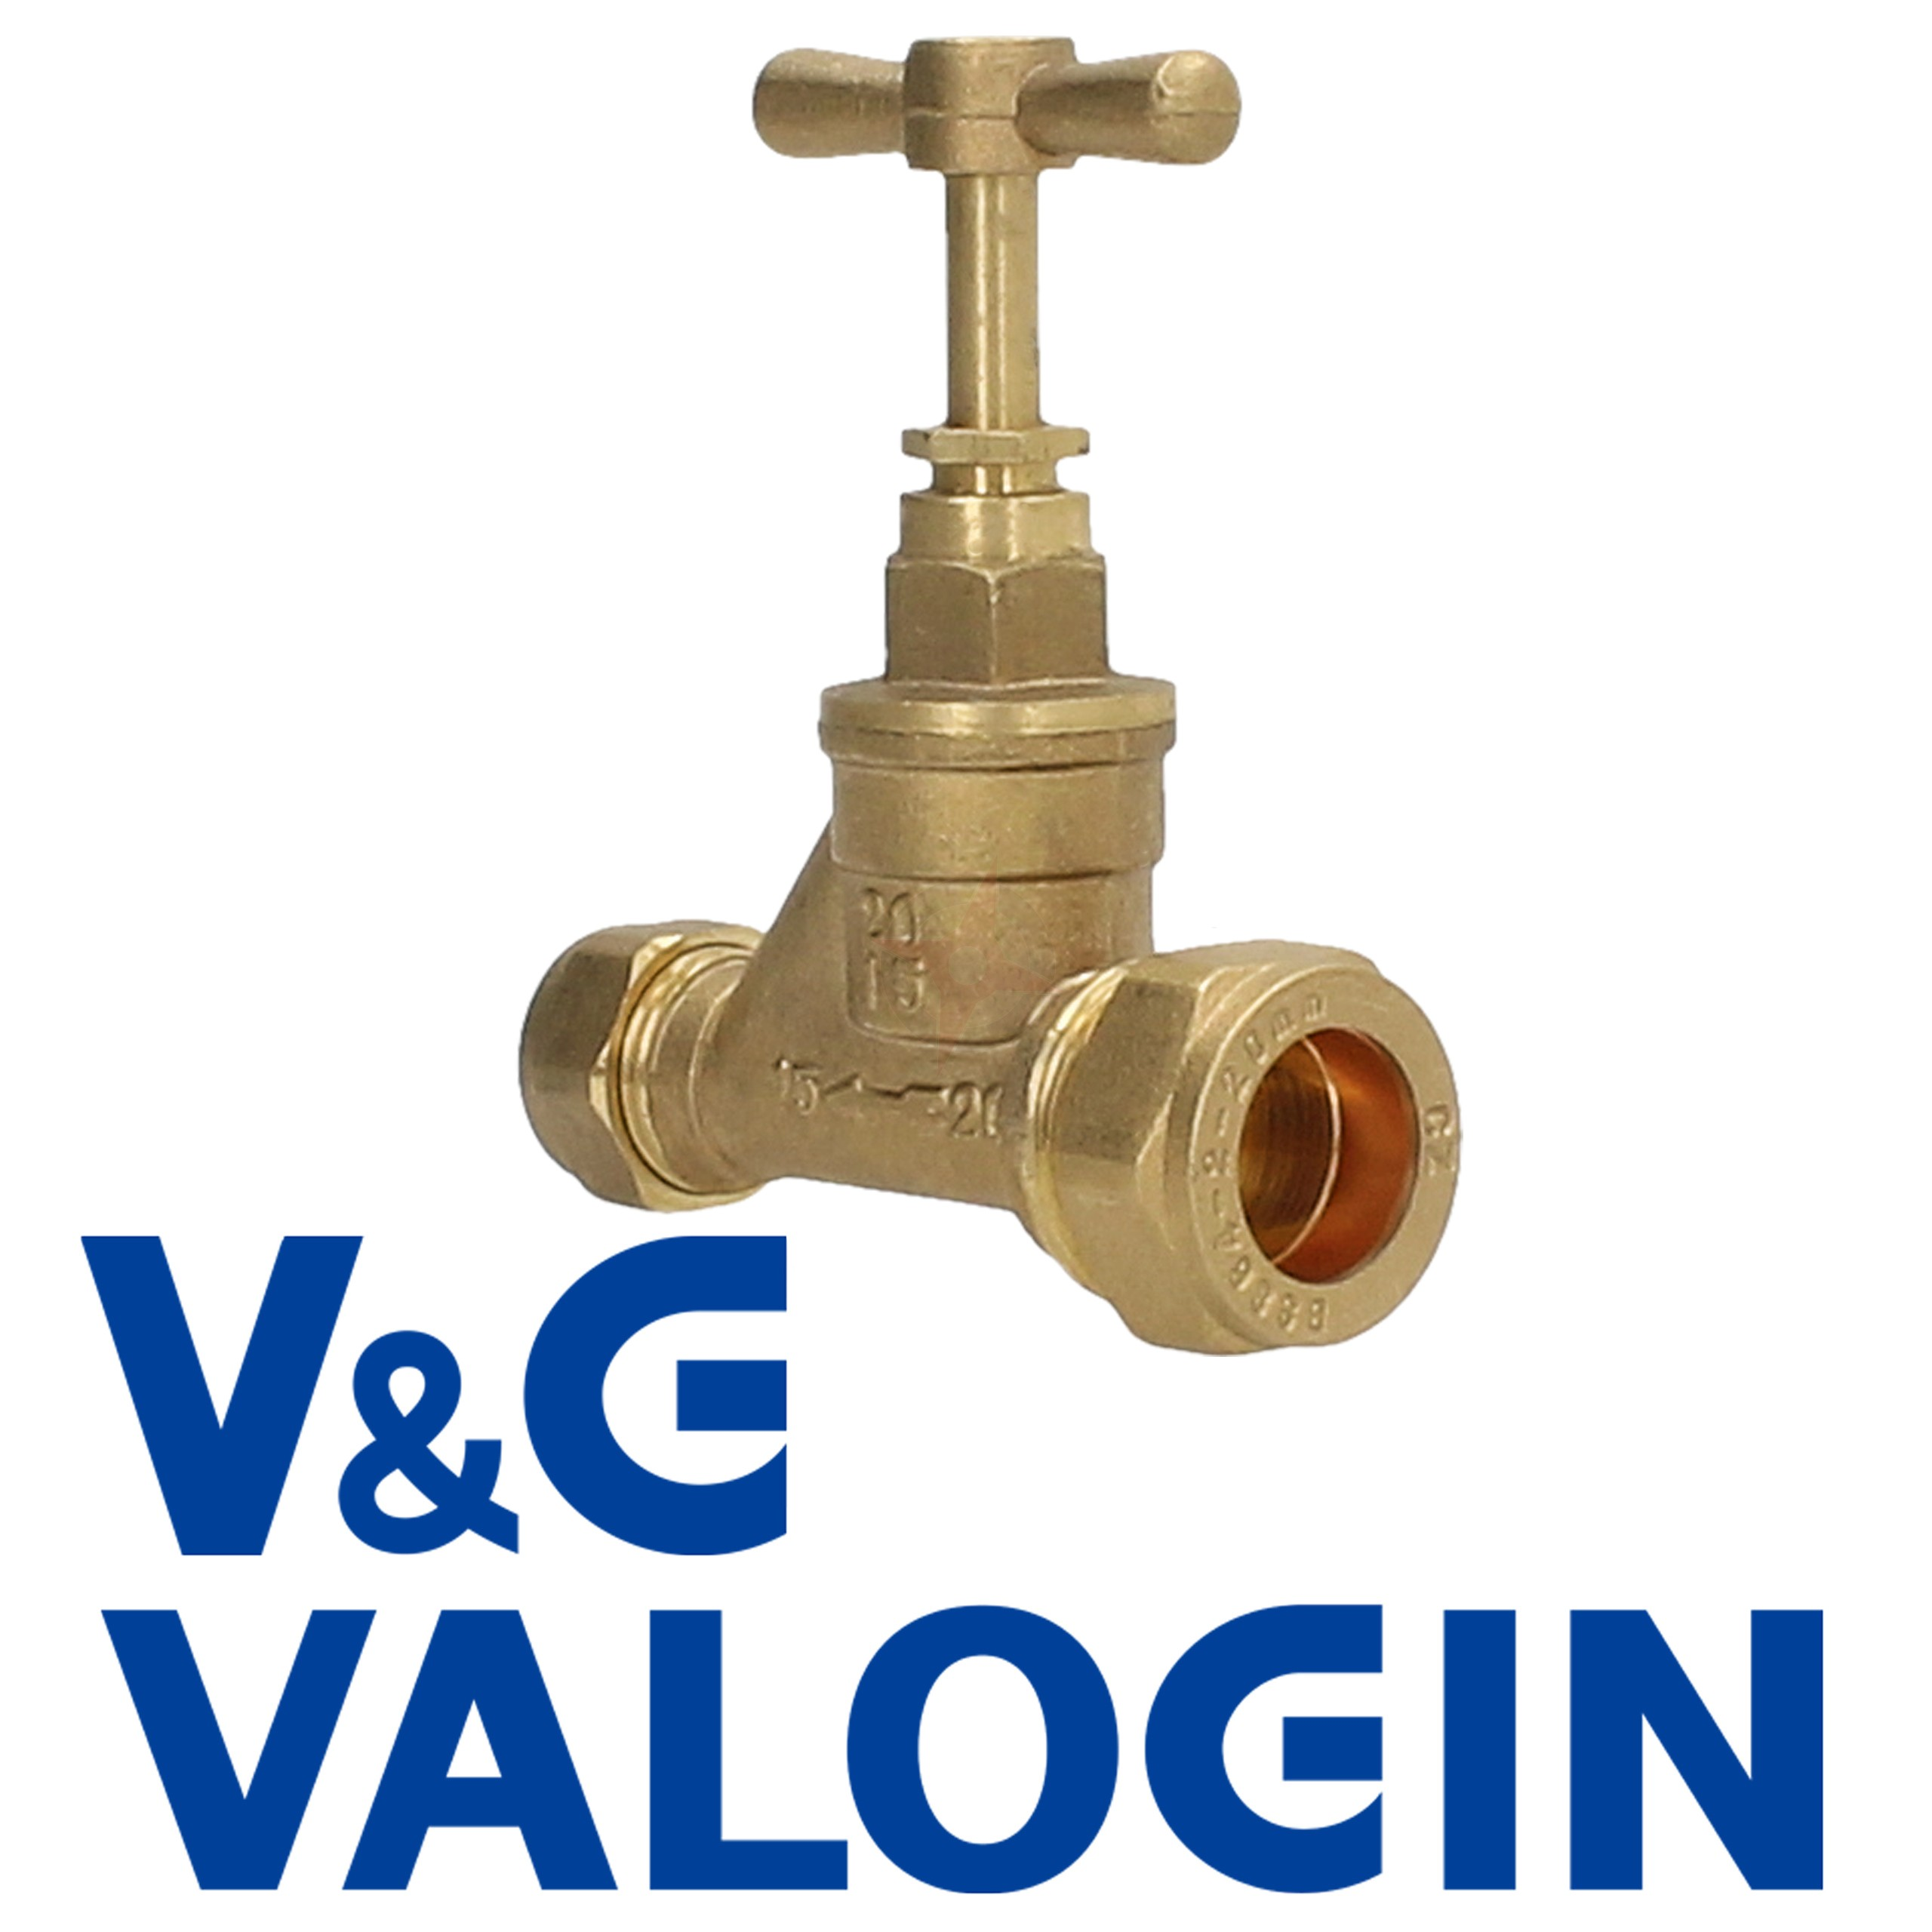 V&G 20mm x 15mm Compression Stopcock (Poly x Copper)